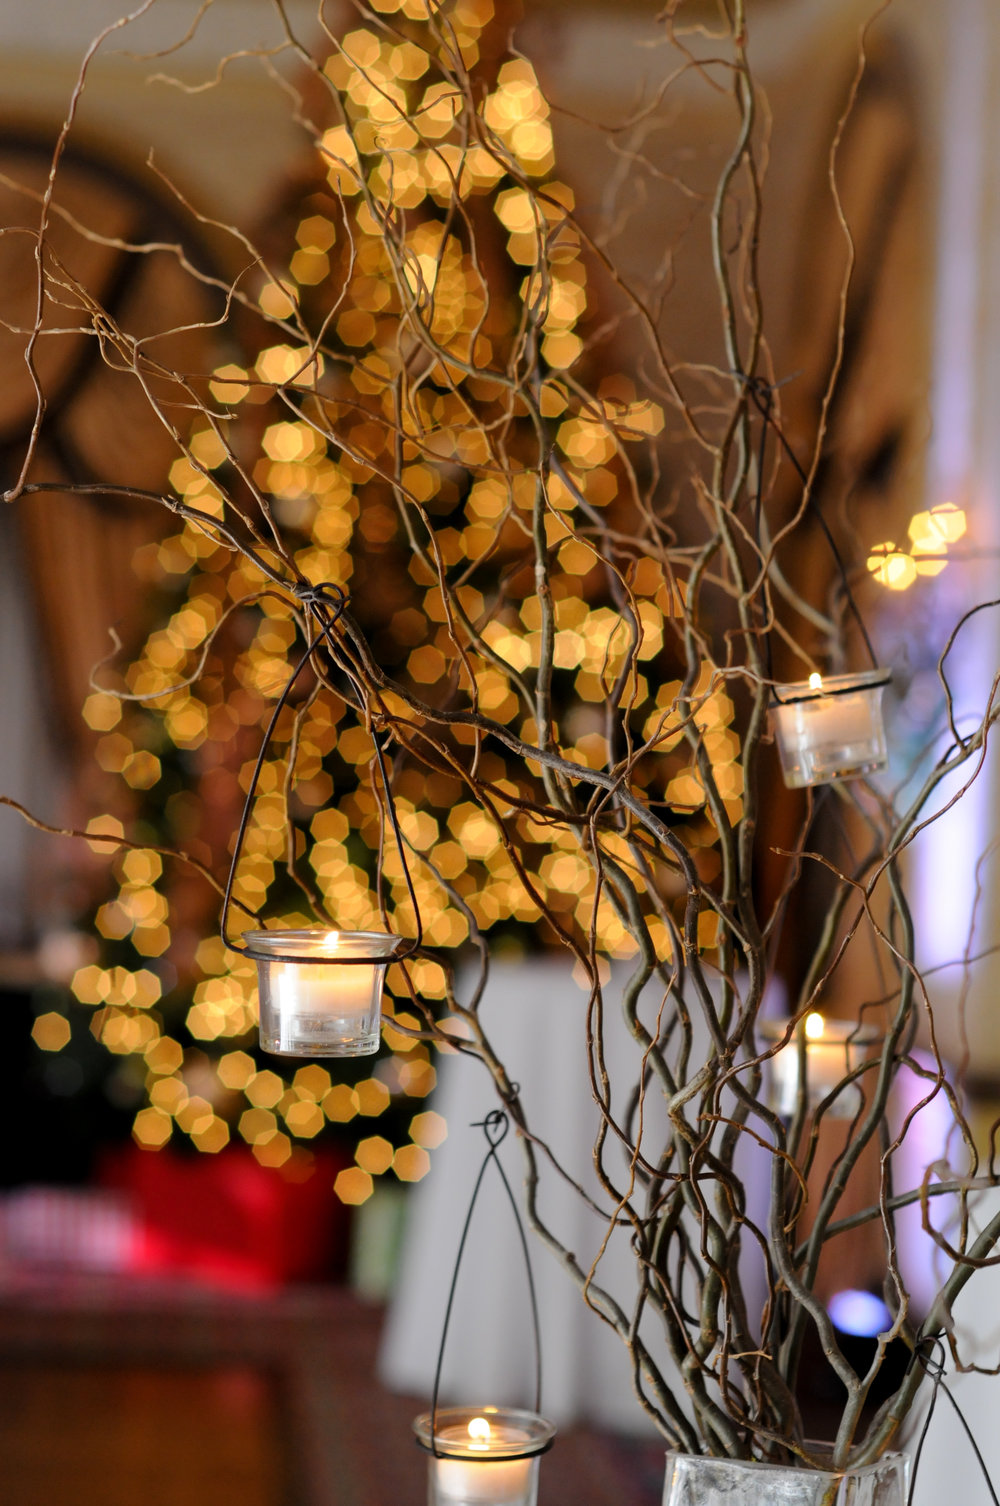 Hanging Votives, Gold Ballroom, Westin Poinsett, Greenville, SC - Alea Moore Photography - lifewithstyle.co